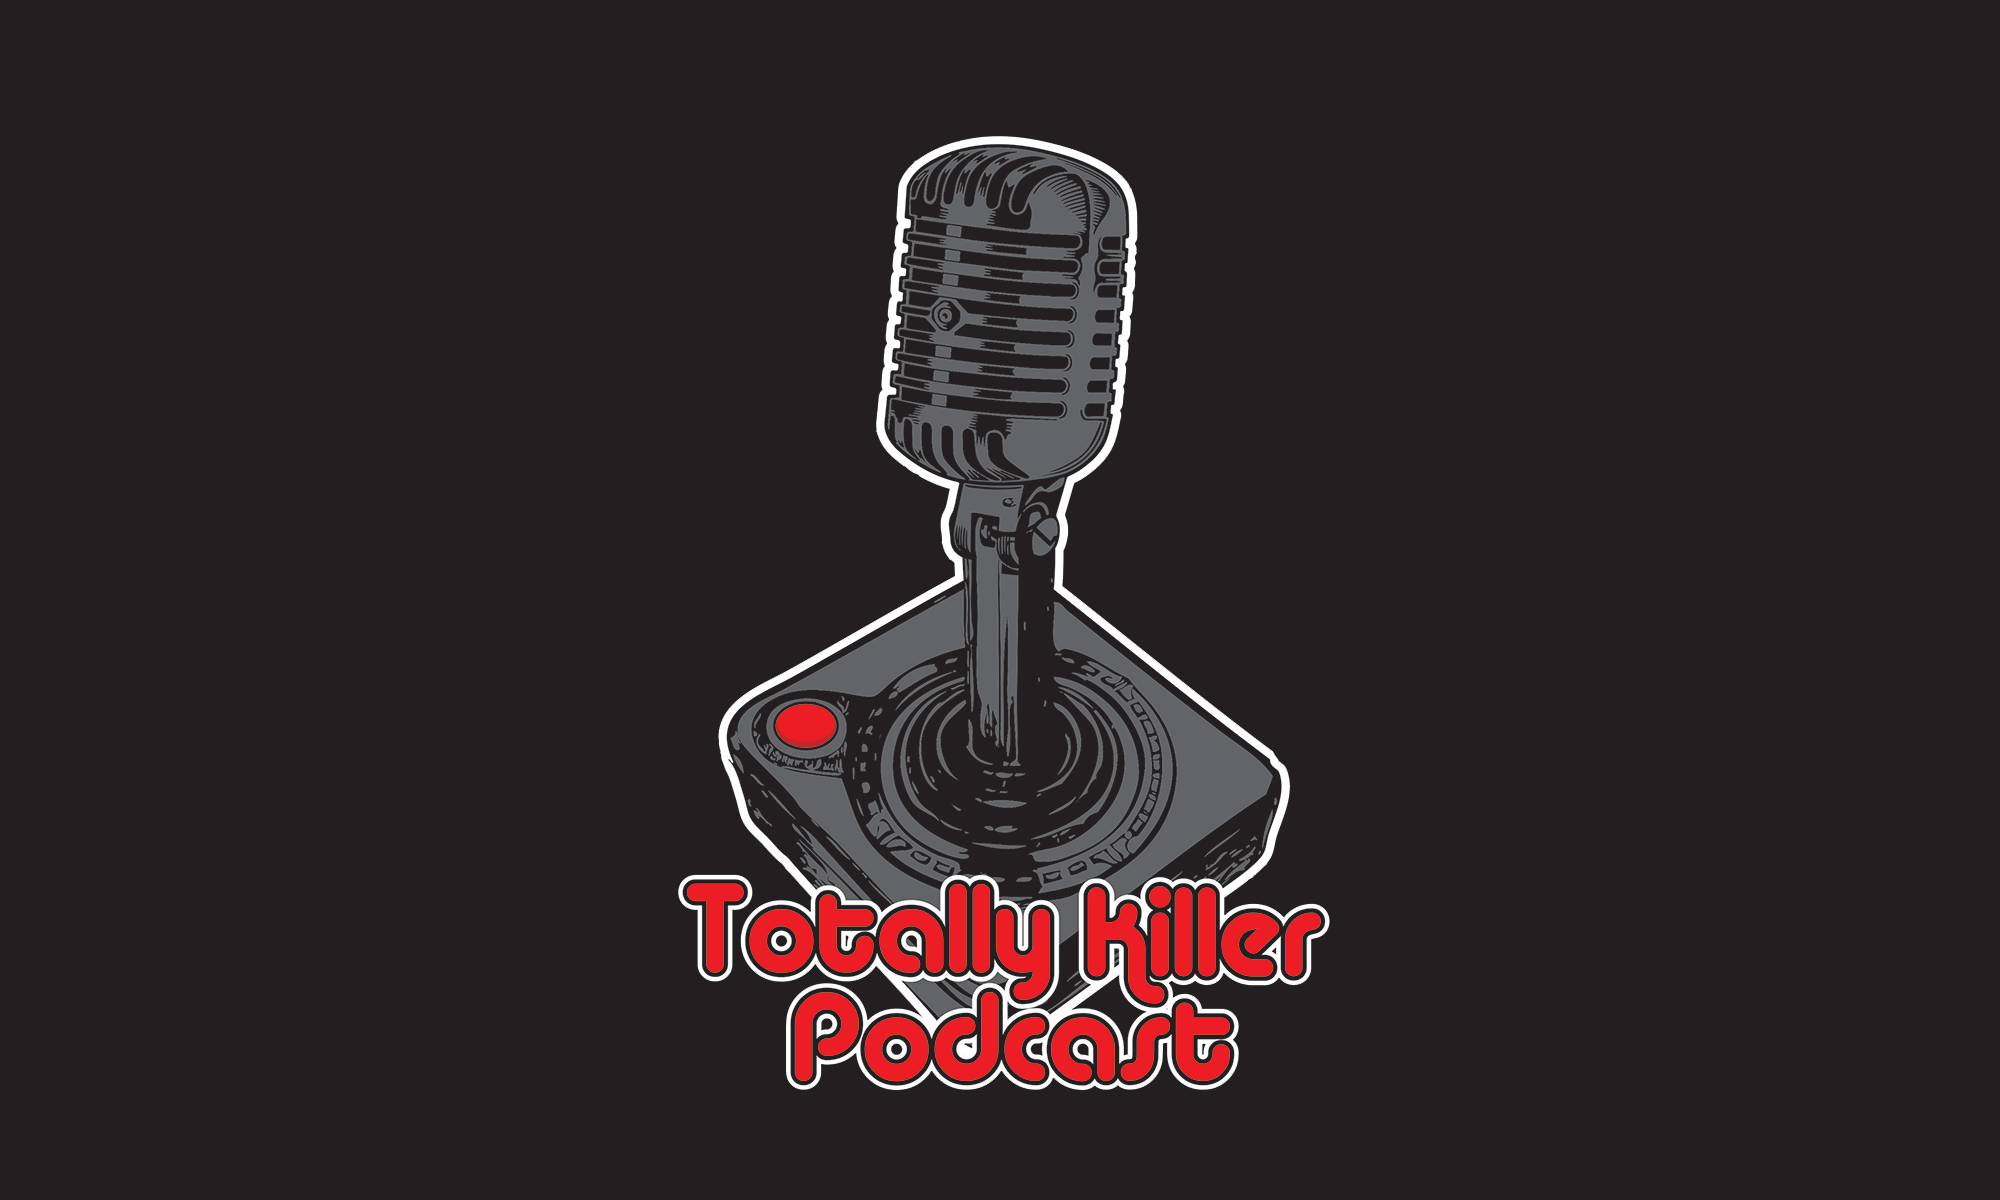 Totally Killer Podcast